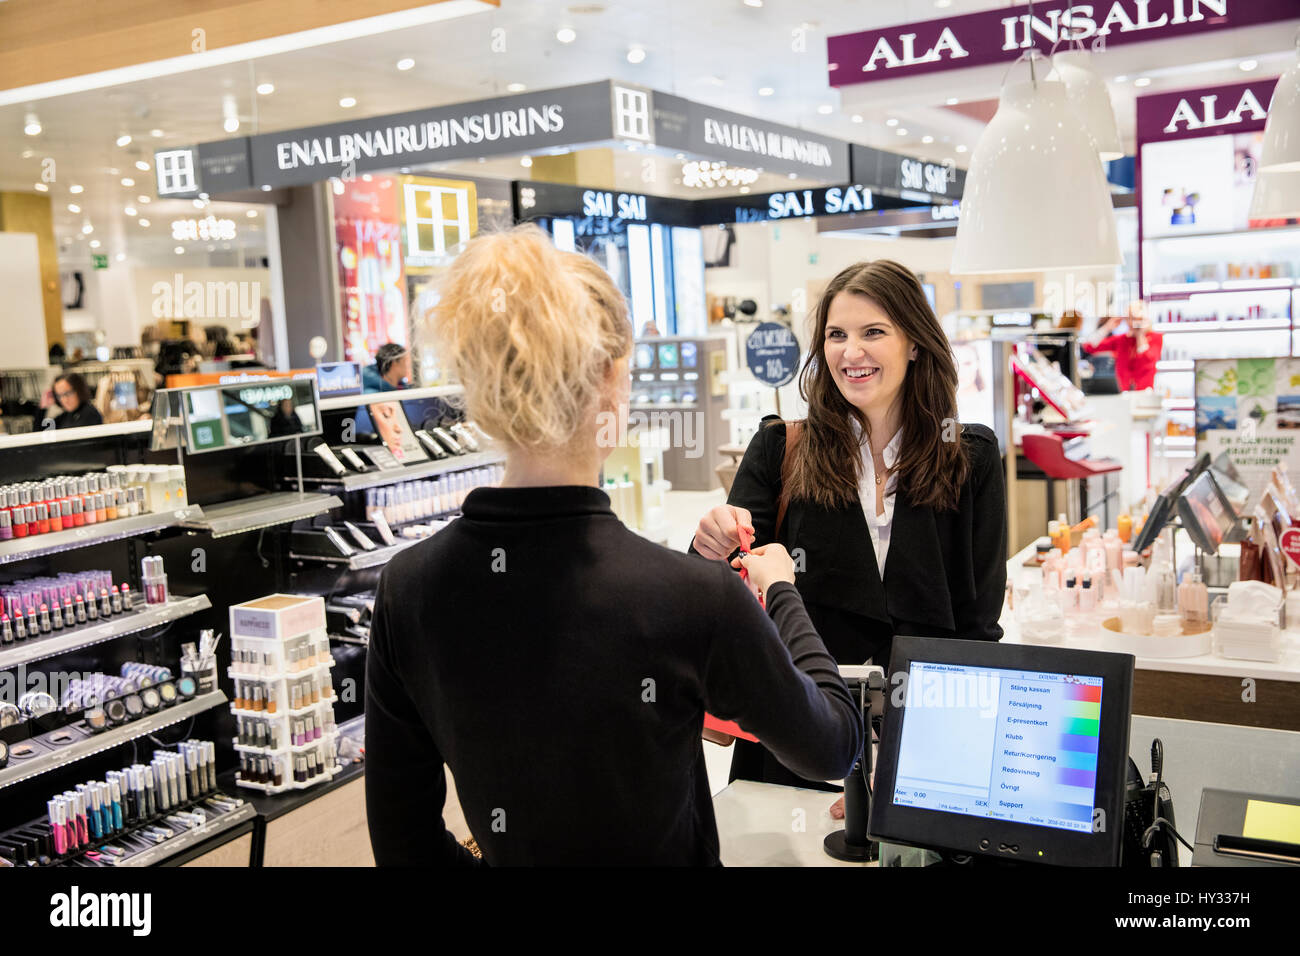 Sweden, Woman doing shopping in perfumery - Stock Image